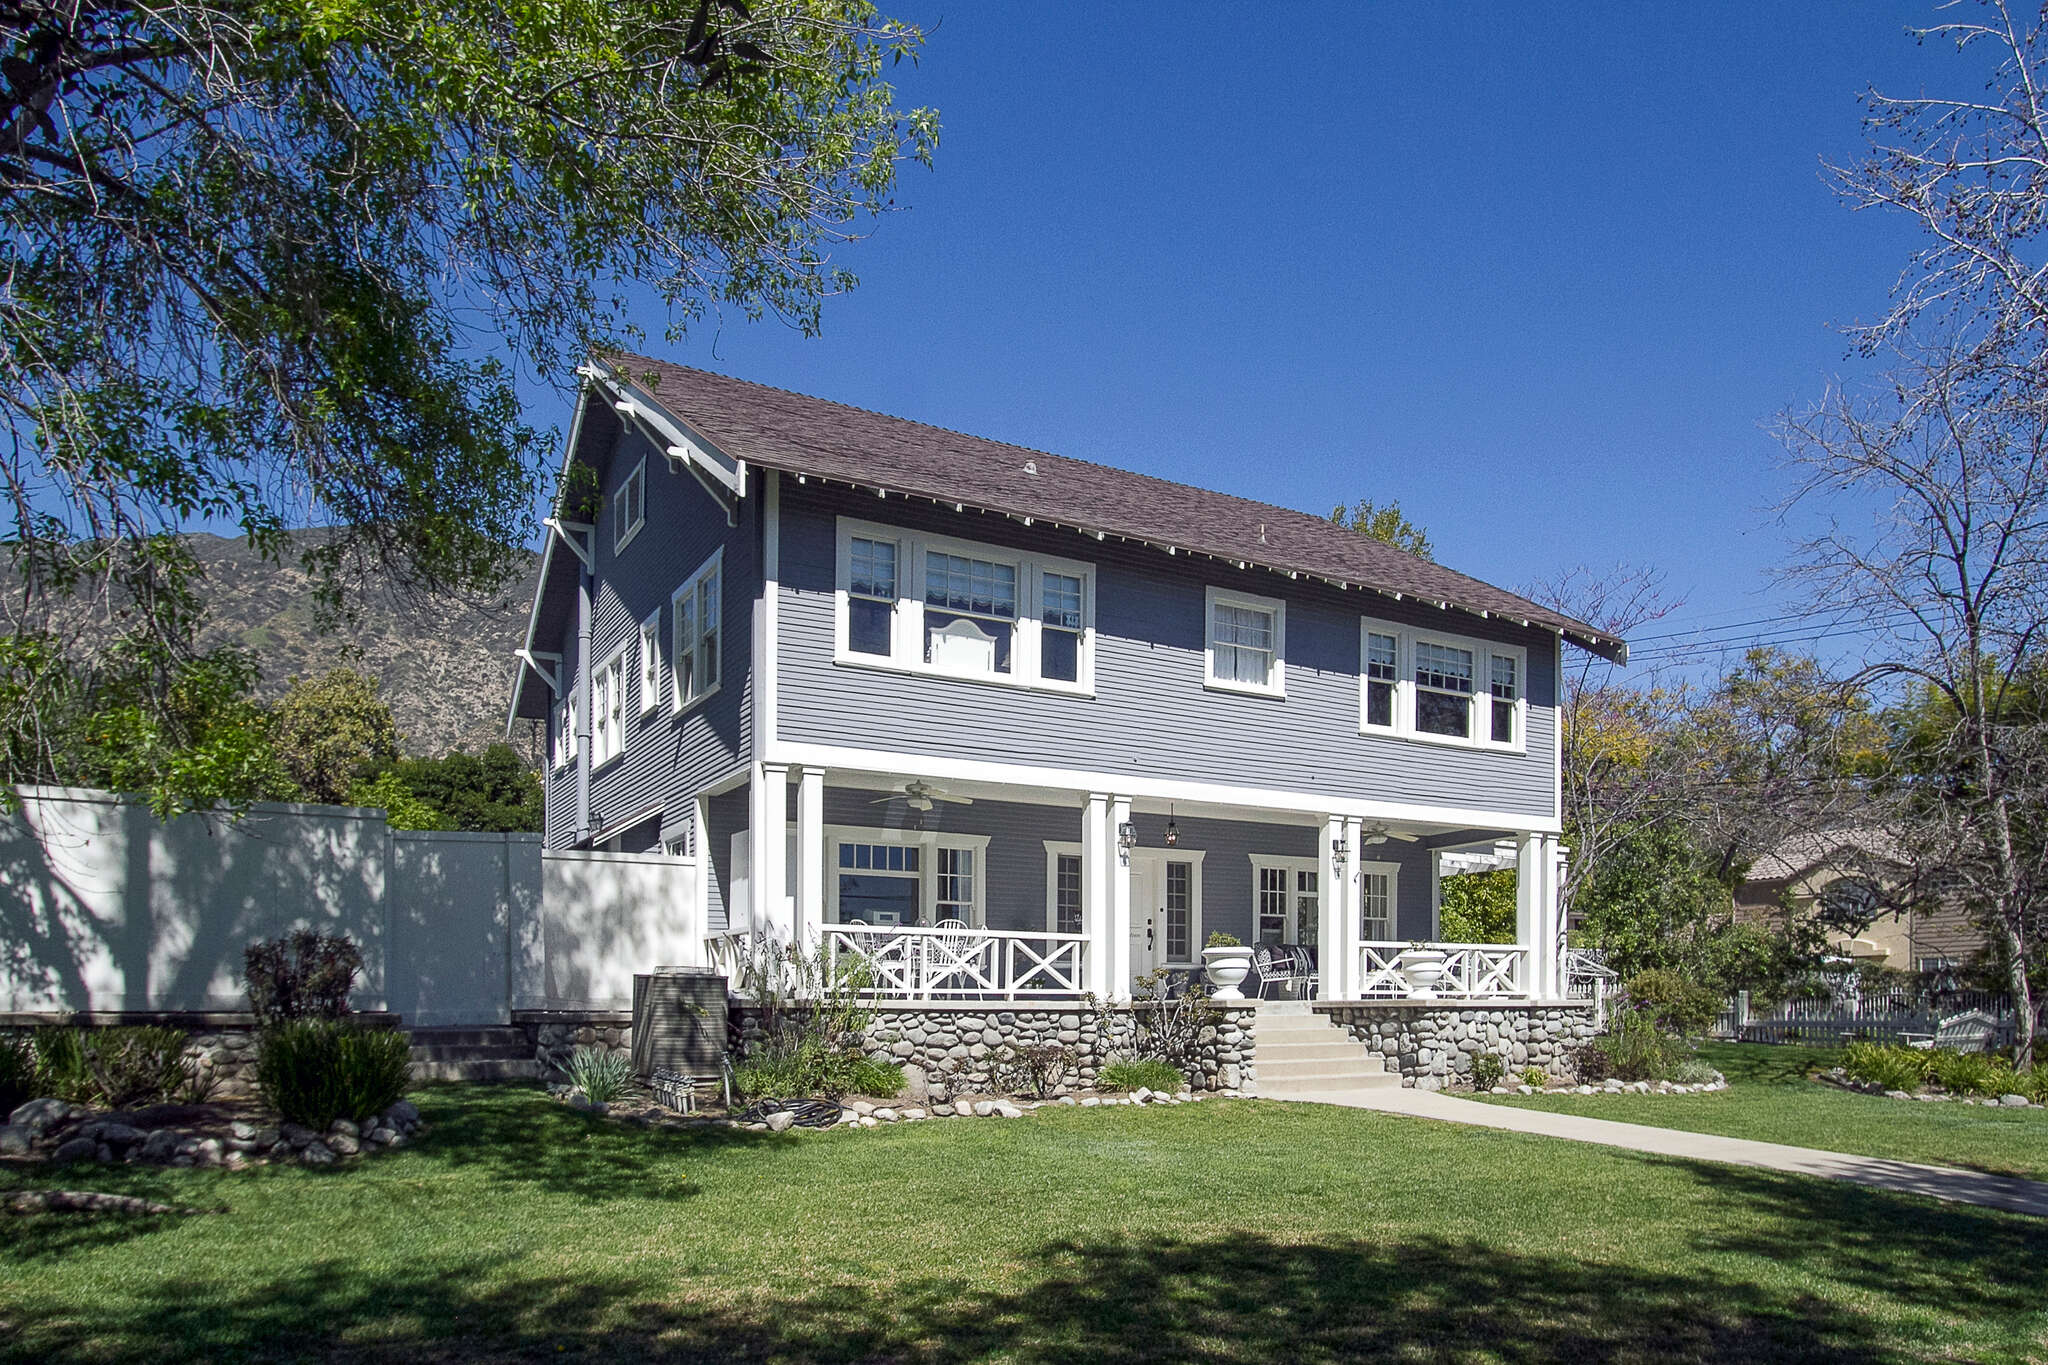 Single Family for Sale at 119 W. Grandview Avenue Sierra Madre, California 91024 United States